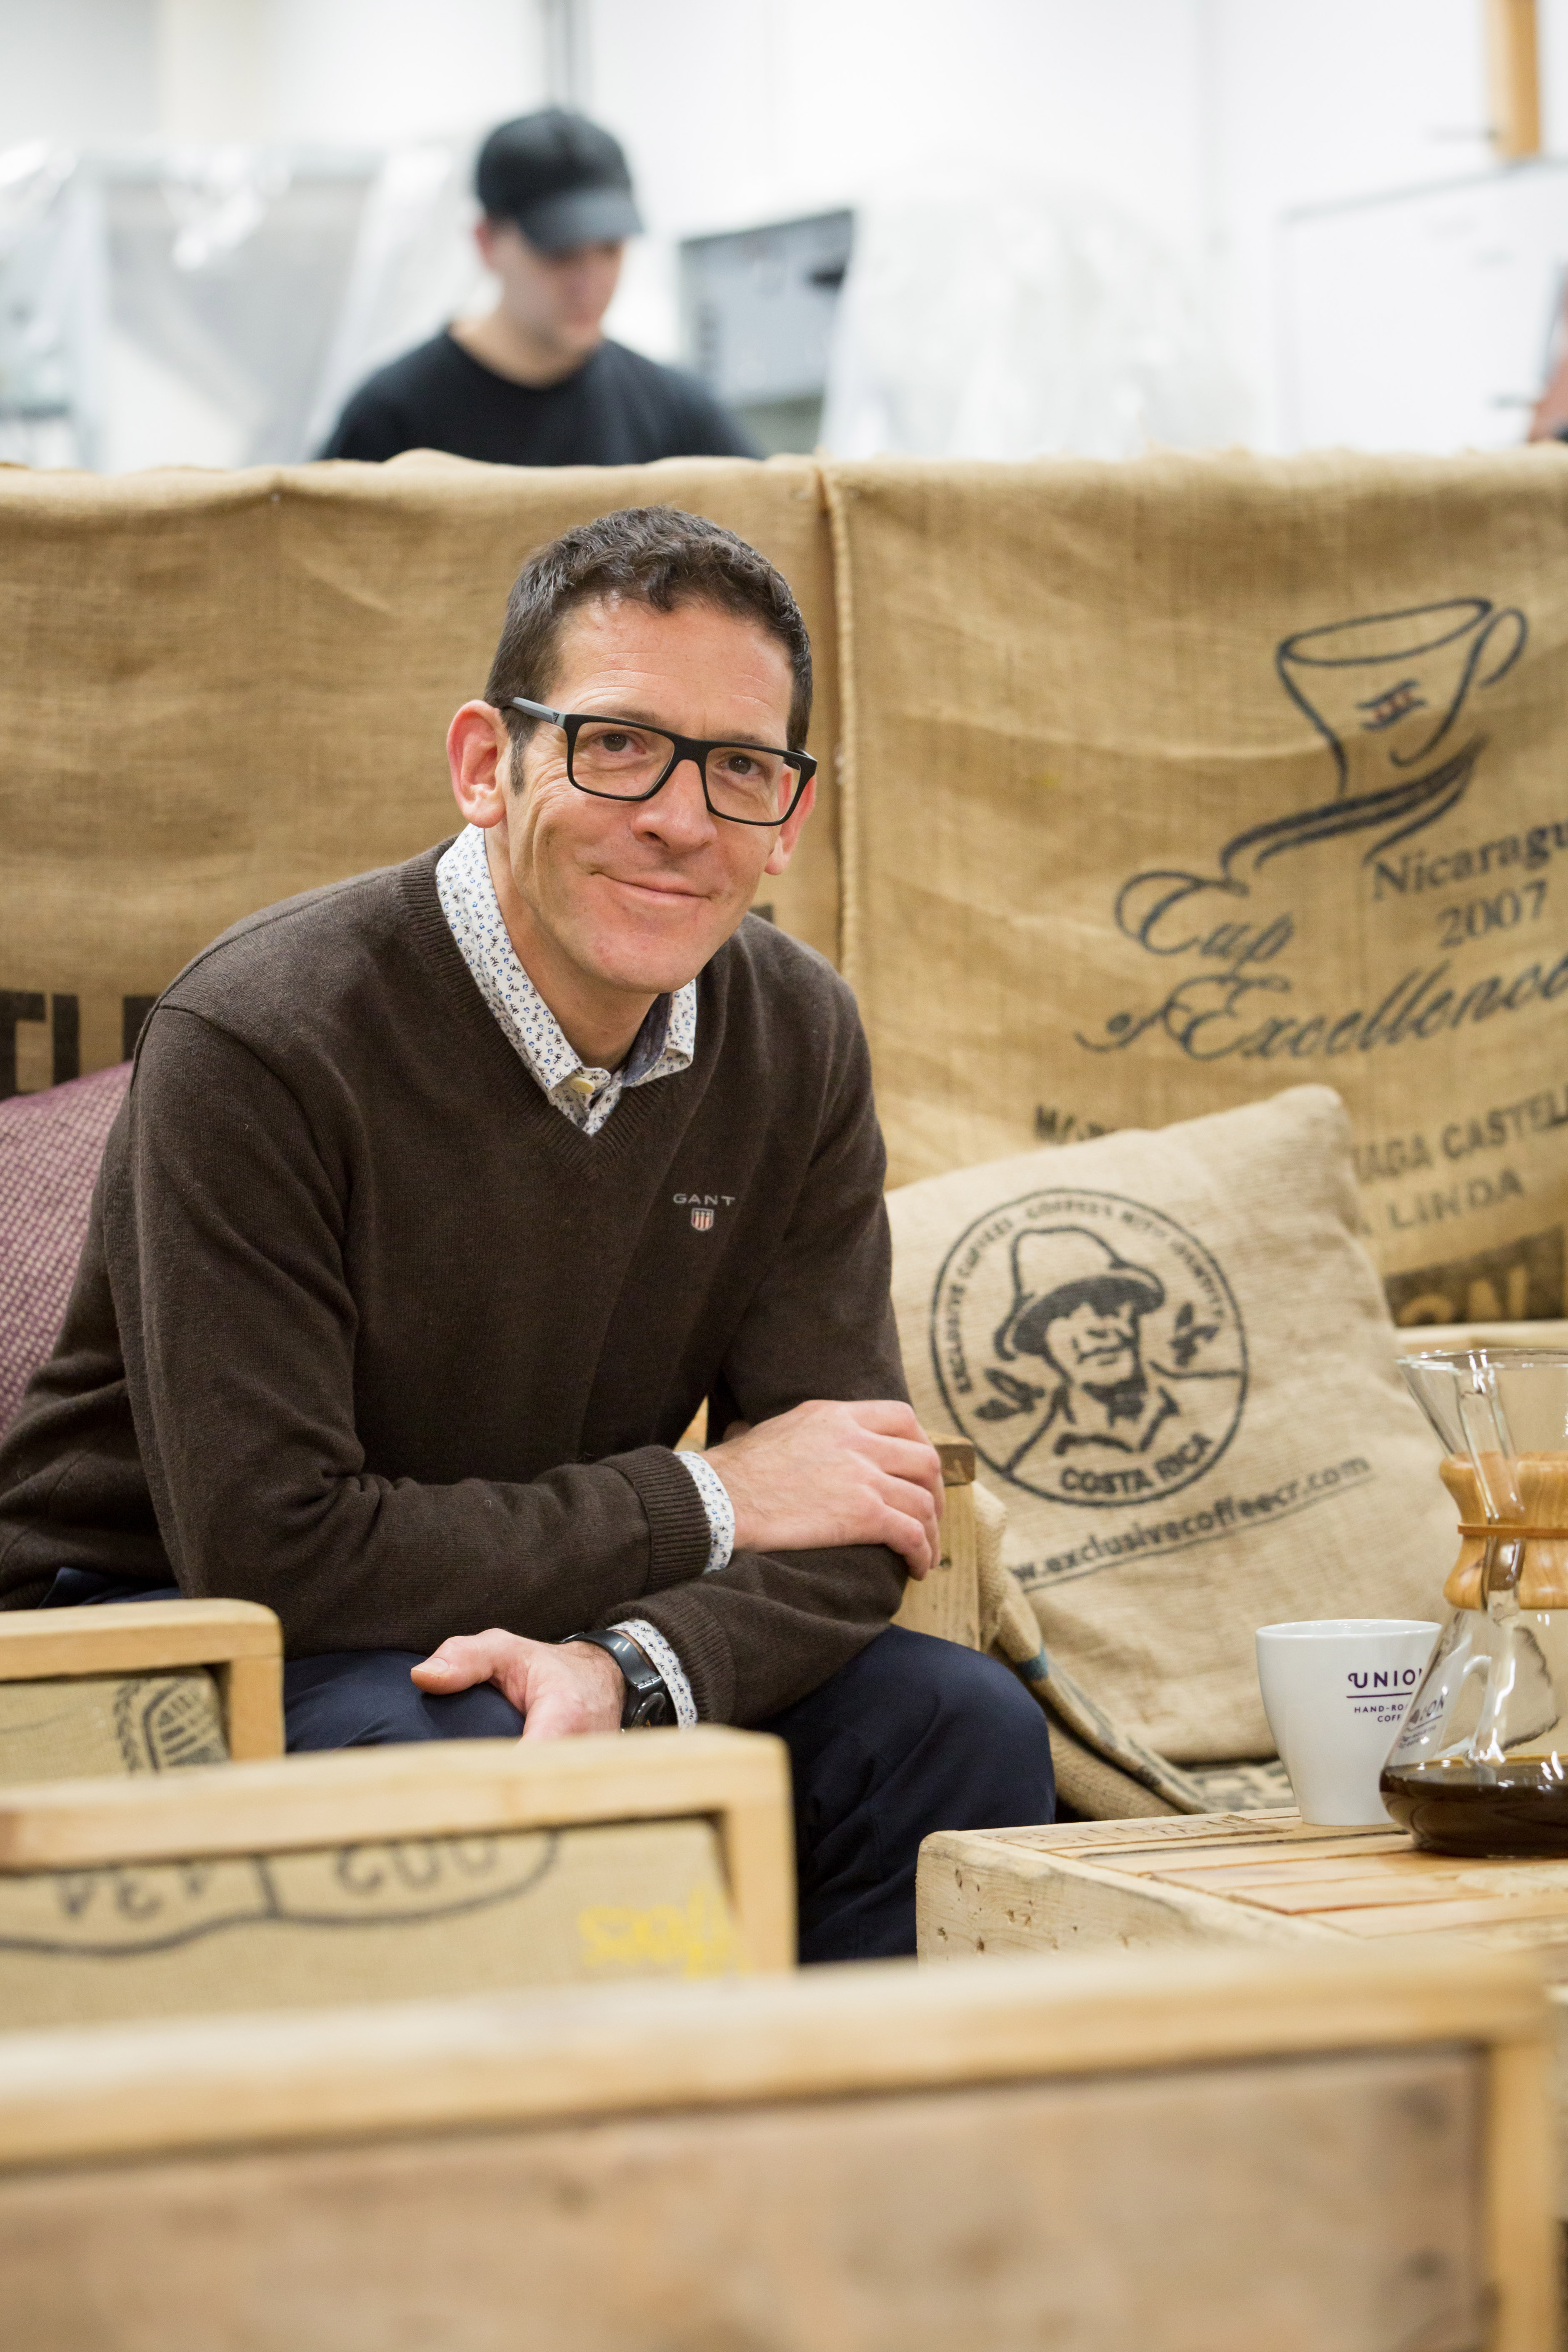 Union Hand-Roasted Coffee founder shows how to grow with integrity, and roast to perfection